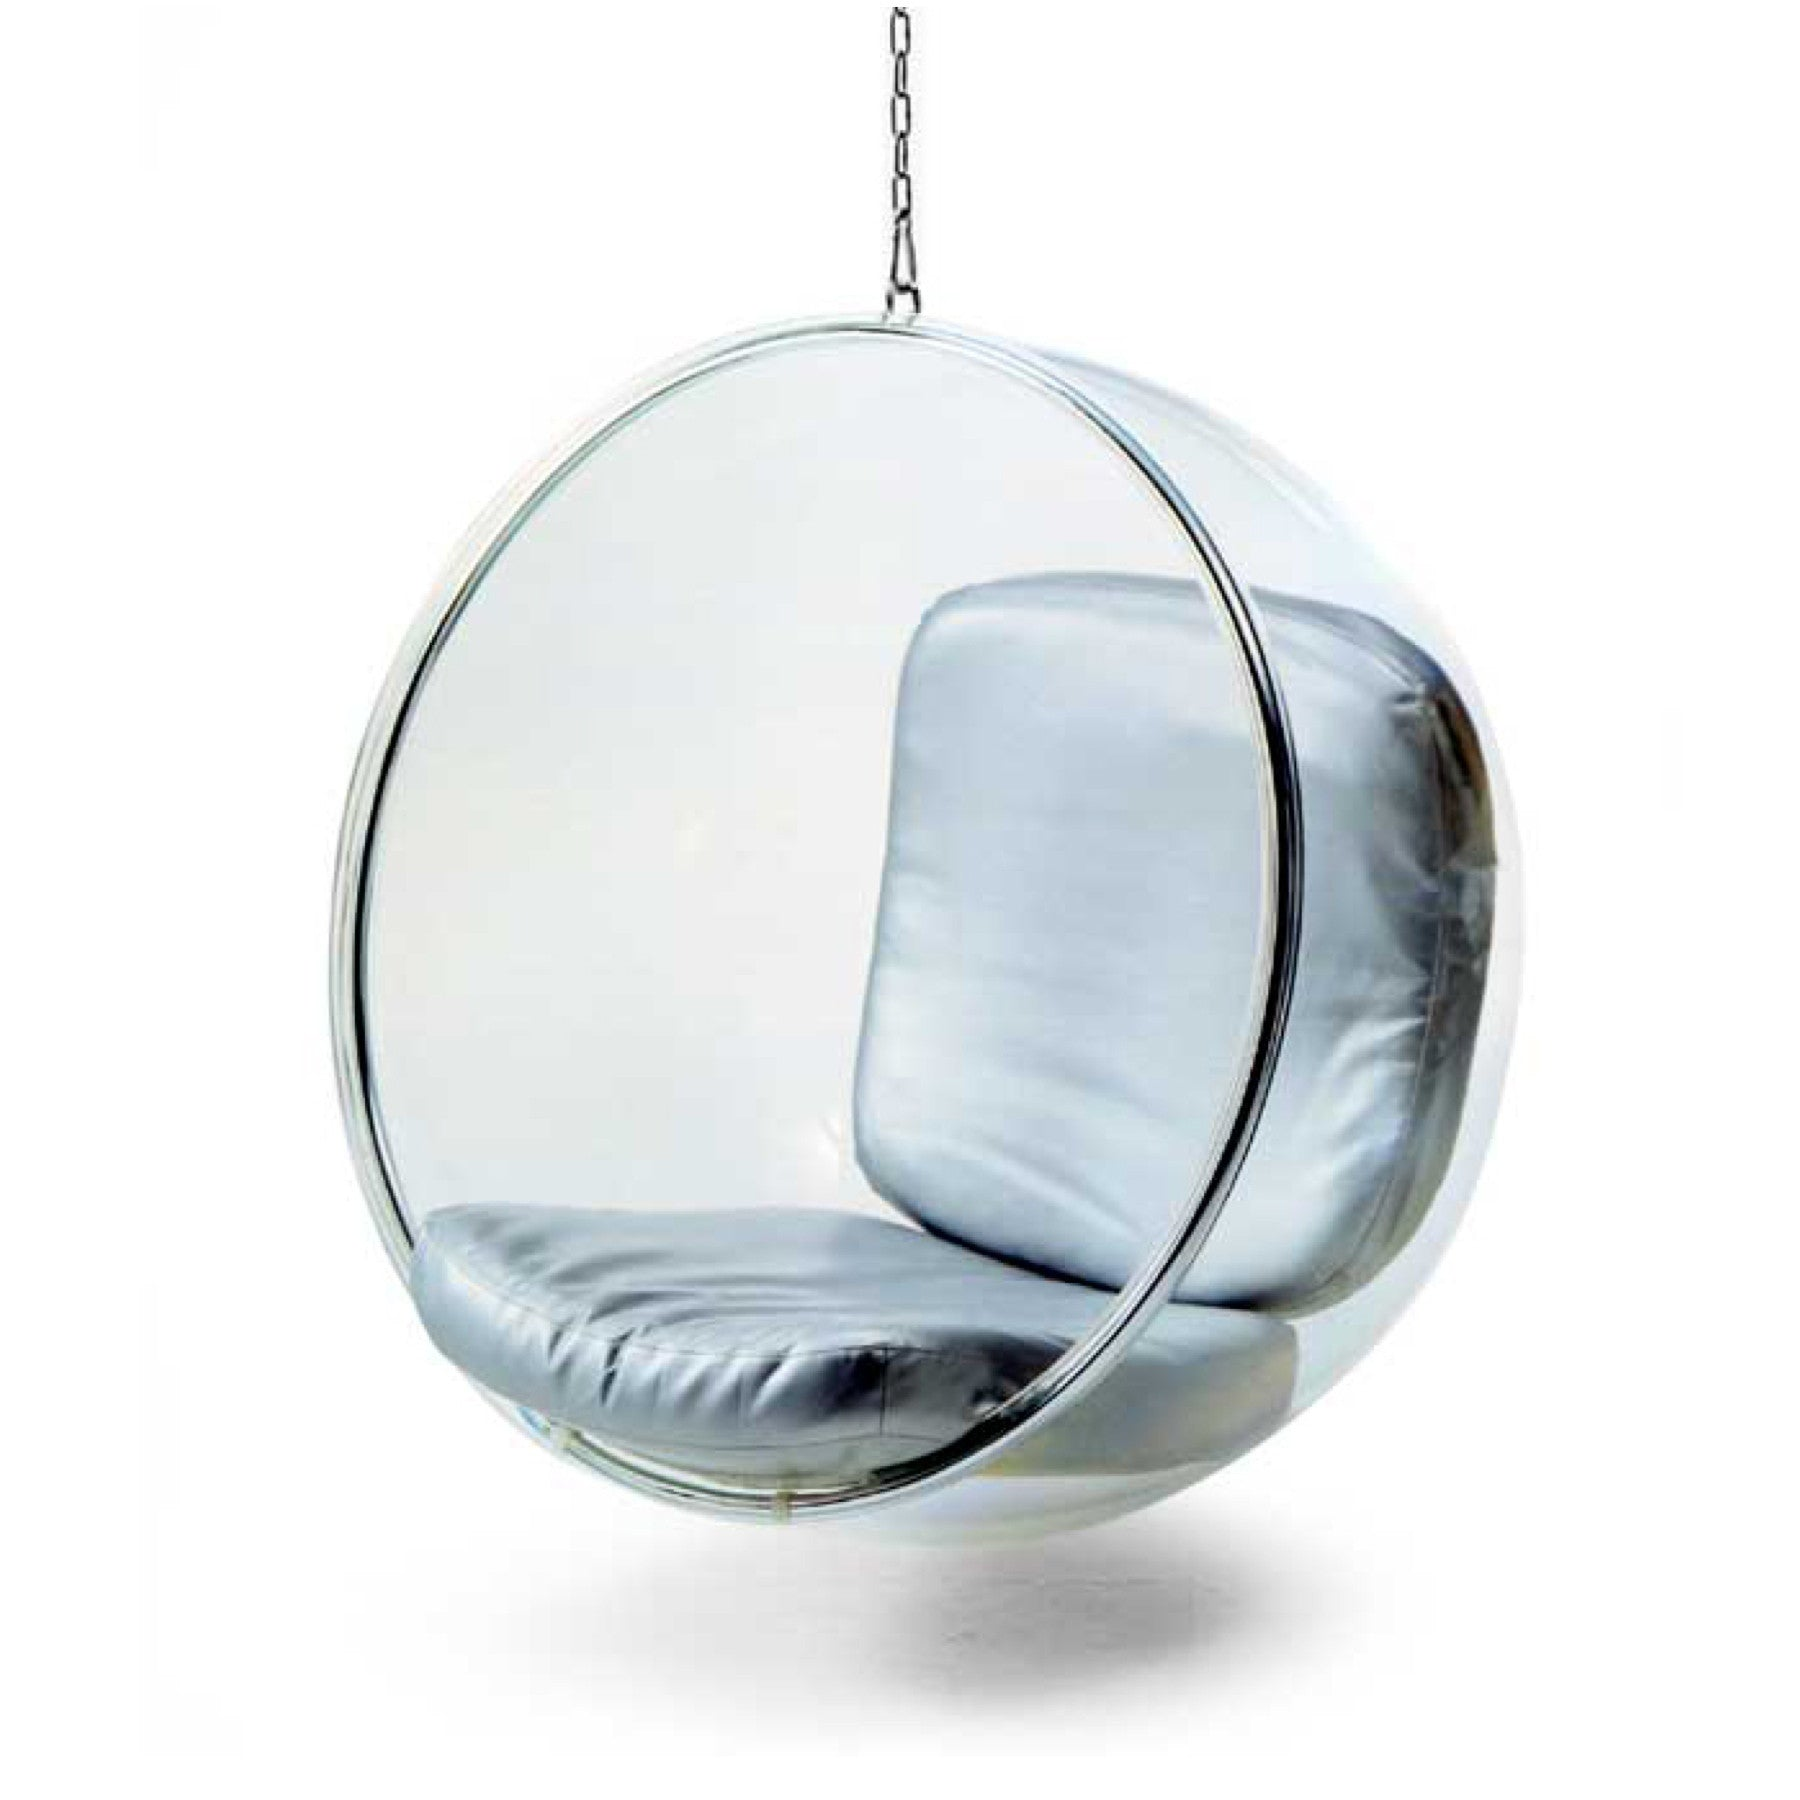 Bubble chair eero aarnio - Tr40032 Eero Aarnio Style Bubble Chair